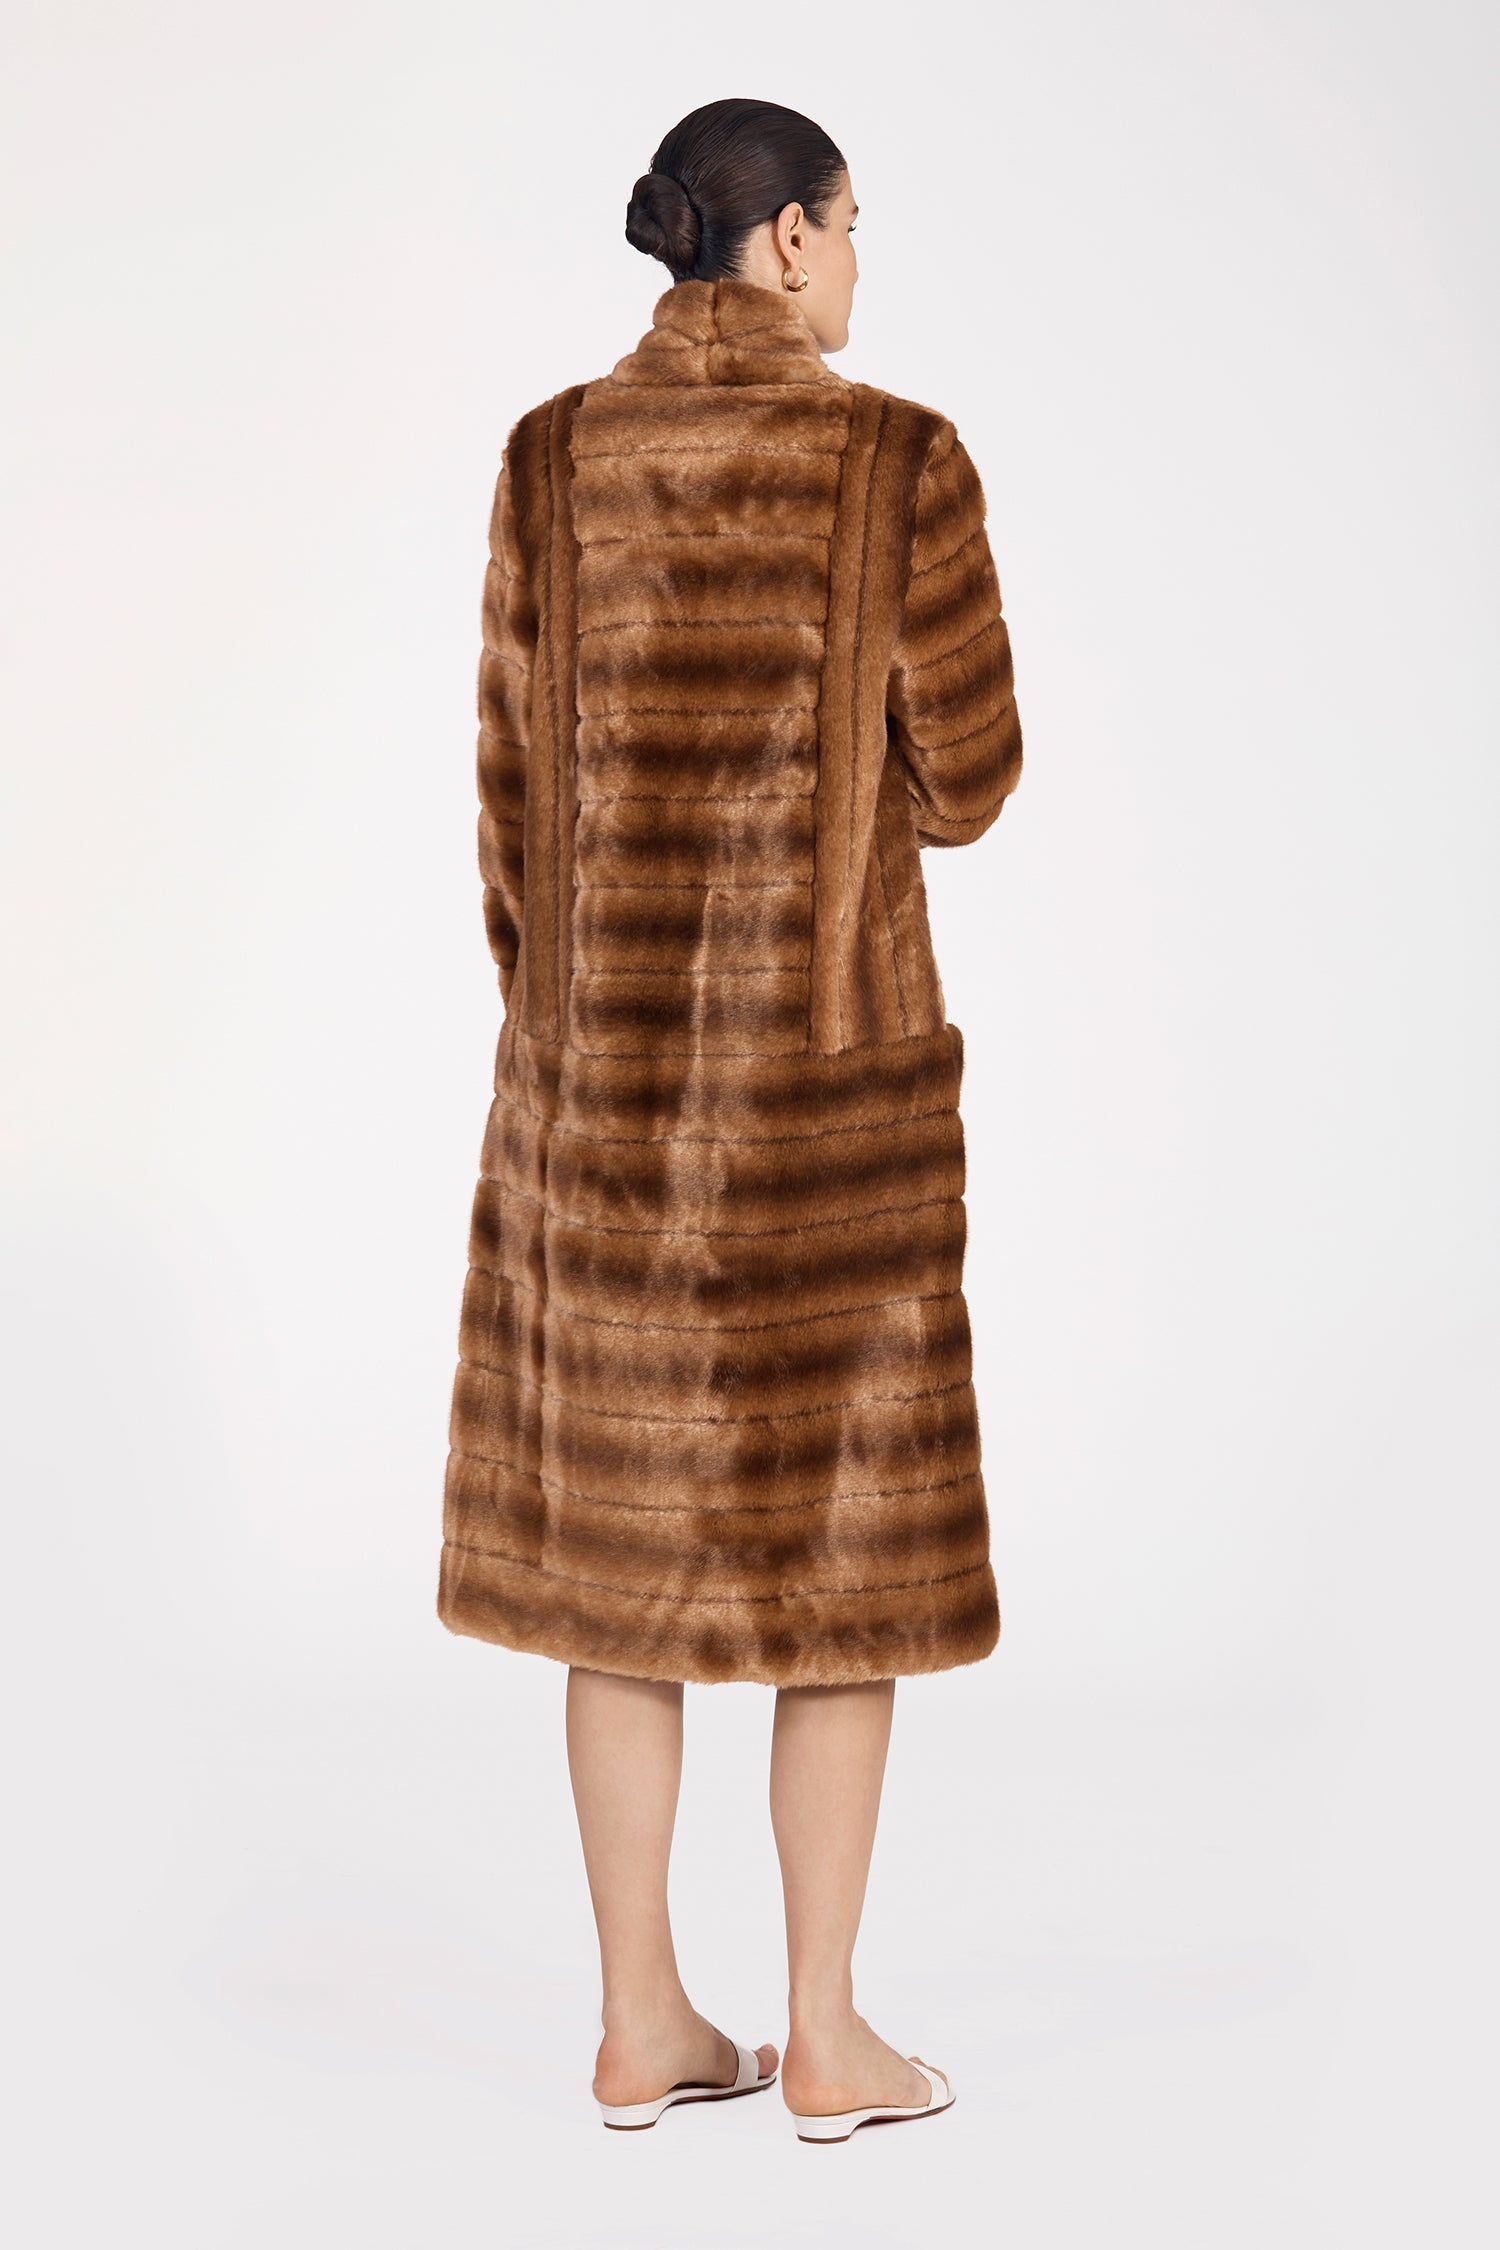 Marei1998's Timeless Echinacea Long Faux Fur Coat In Classic Brown Color. Featuring Oversized Silhouette And Wide Shawl Neckline. Investment Piece / Winter Essential. As Worn By The Model. Back View. Resort 2020 Collection - Furless Friendship.